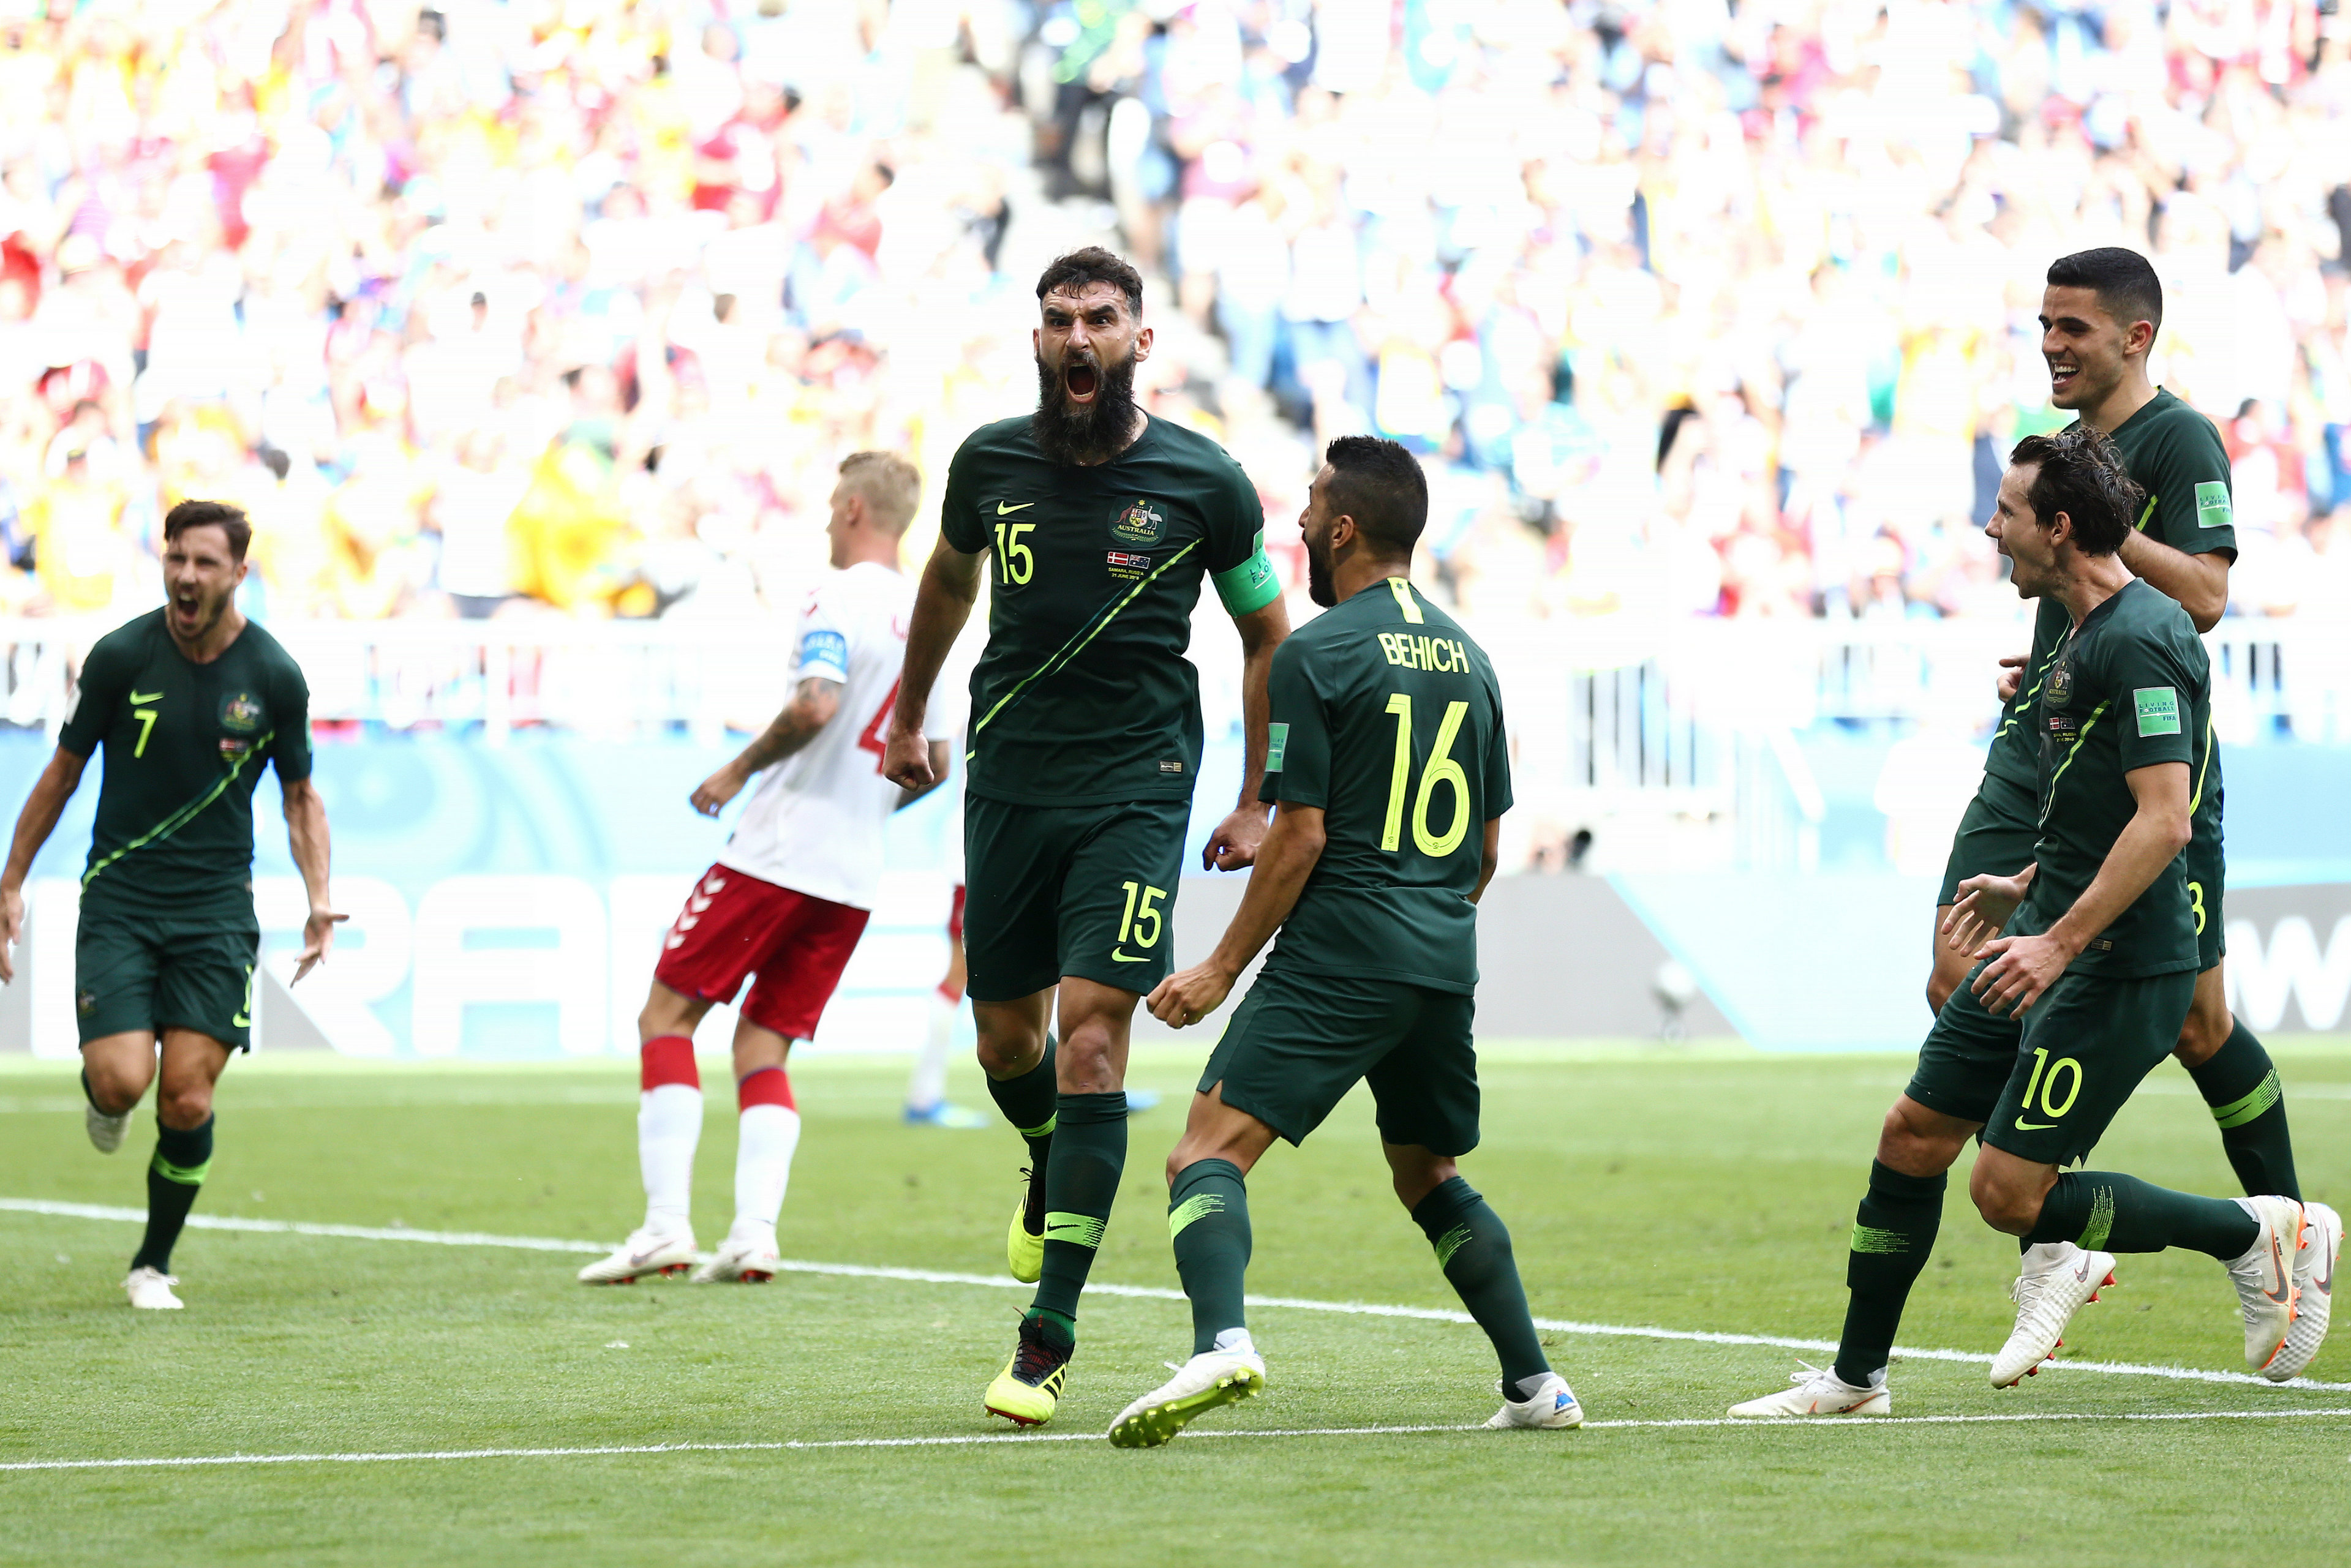 The Socceroos get around skipper Mile Jedinak after his penalty.